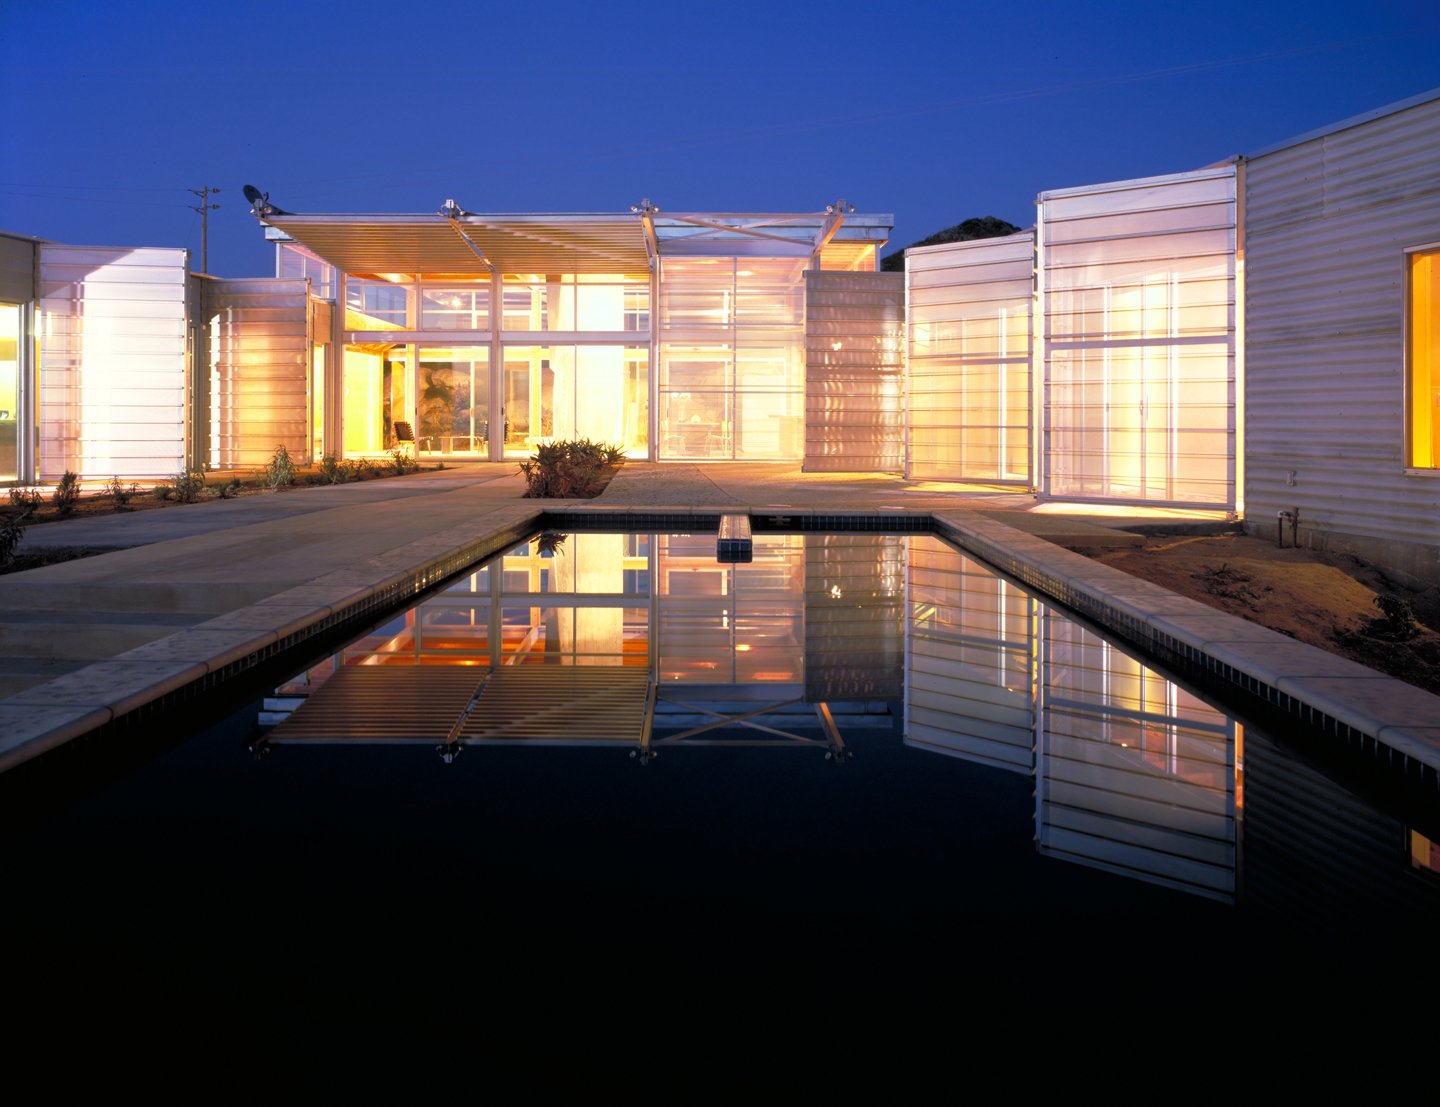 #exterior #outside #outdoor #pooldesign #pool #light #eco #green #sustainable #ValleyCenter #California #KevinDalyArchitects  Valley Center House by Kevin Daly Architects